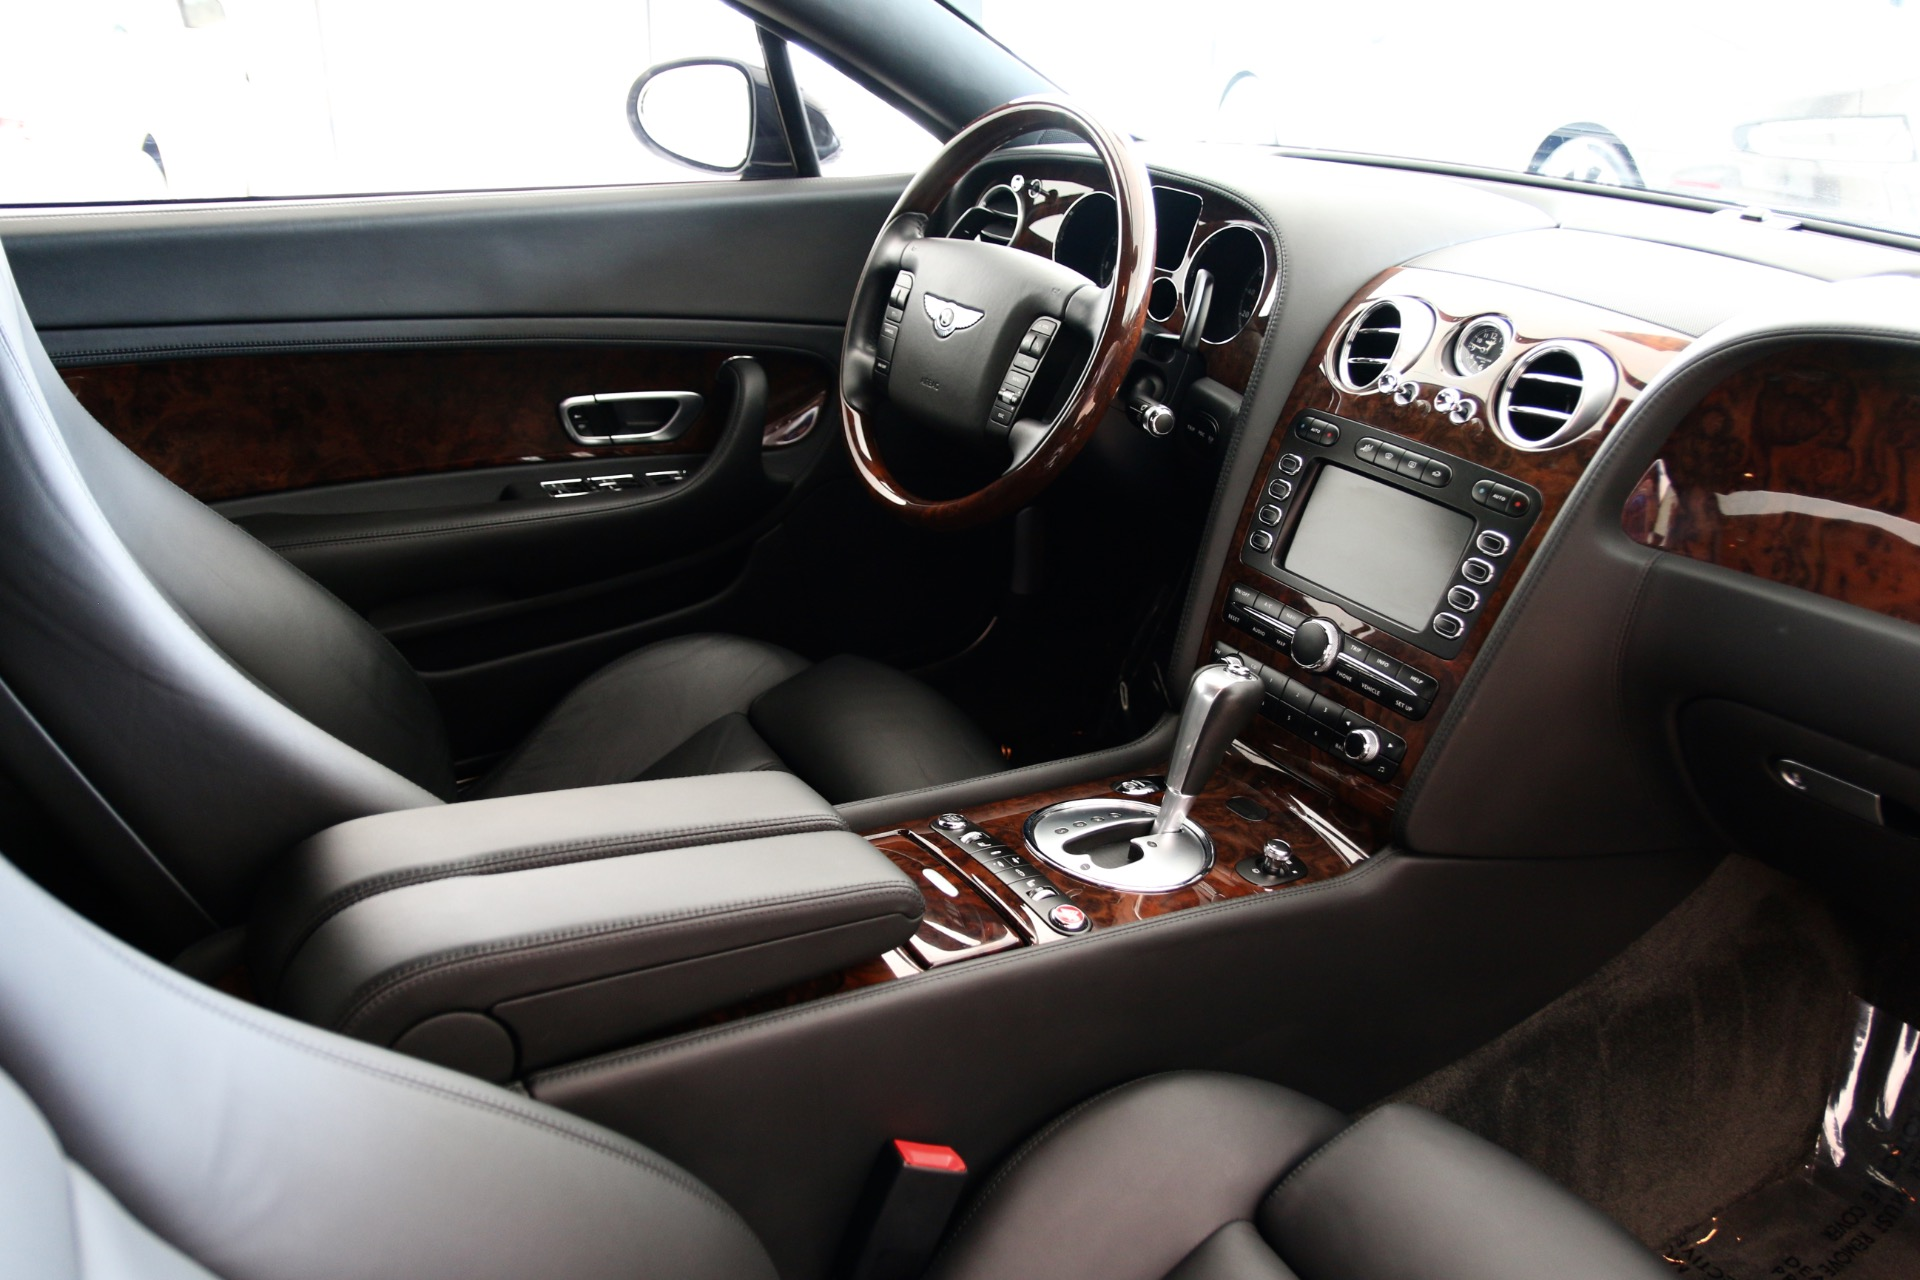 2009 bentley continental gt stock p060869 for sale near. Black Bedroom Furniture Sets. Home Design Ideas